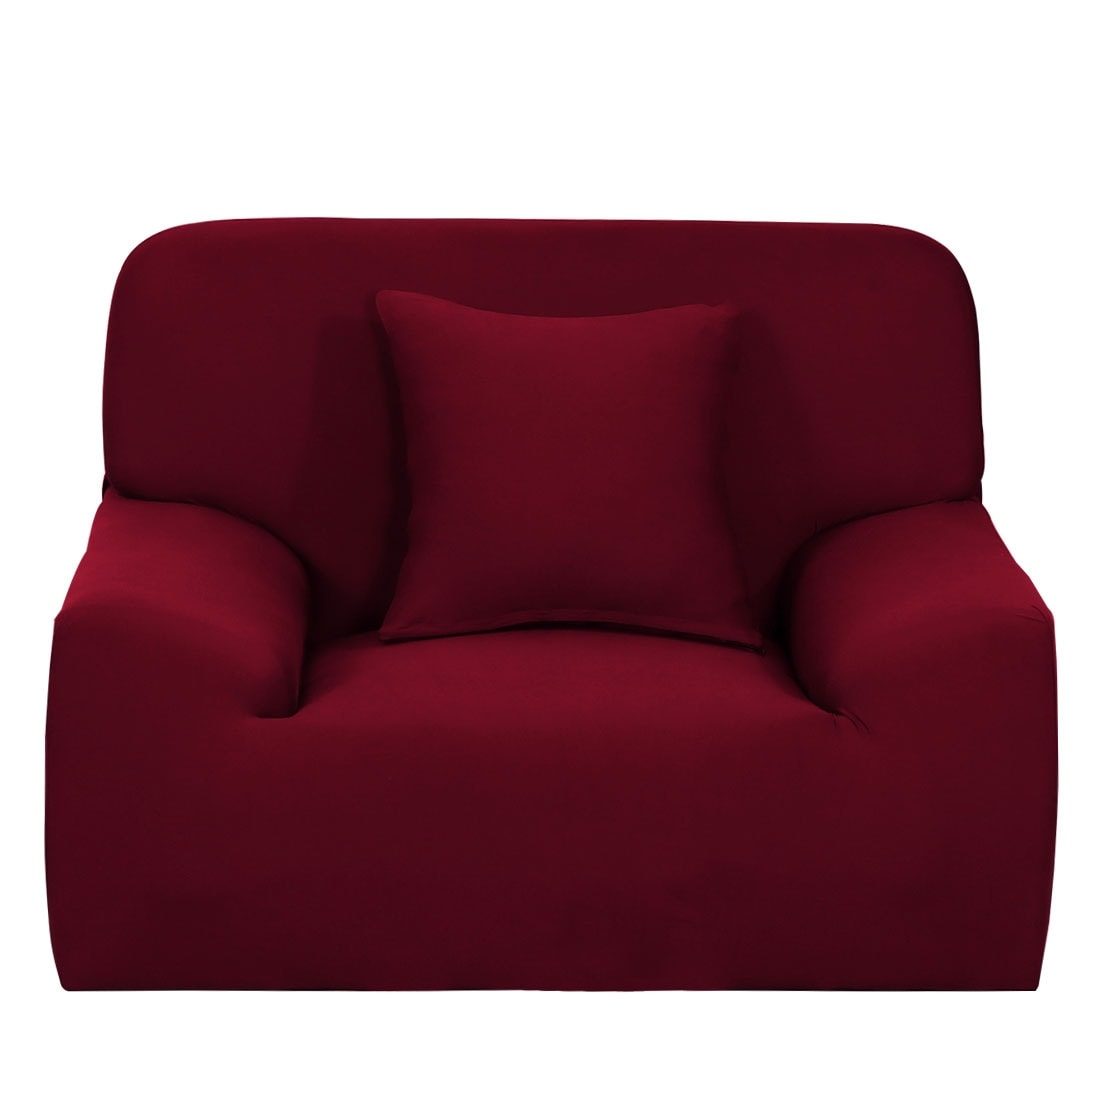 Sofa Slipcovers 21 Solid Color Sofa Cover Stretch Seat Couch ...